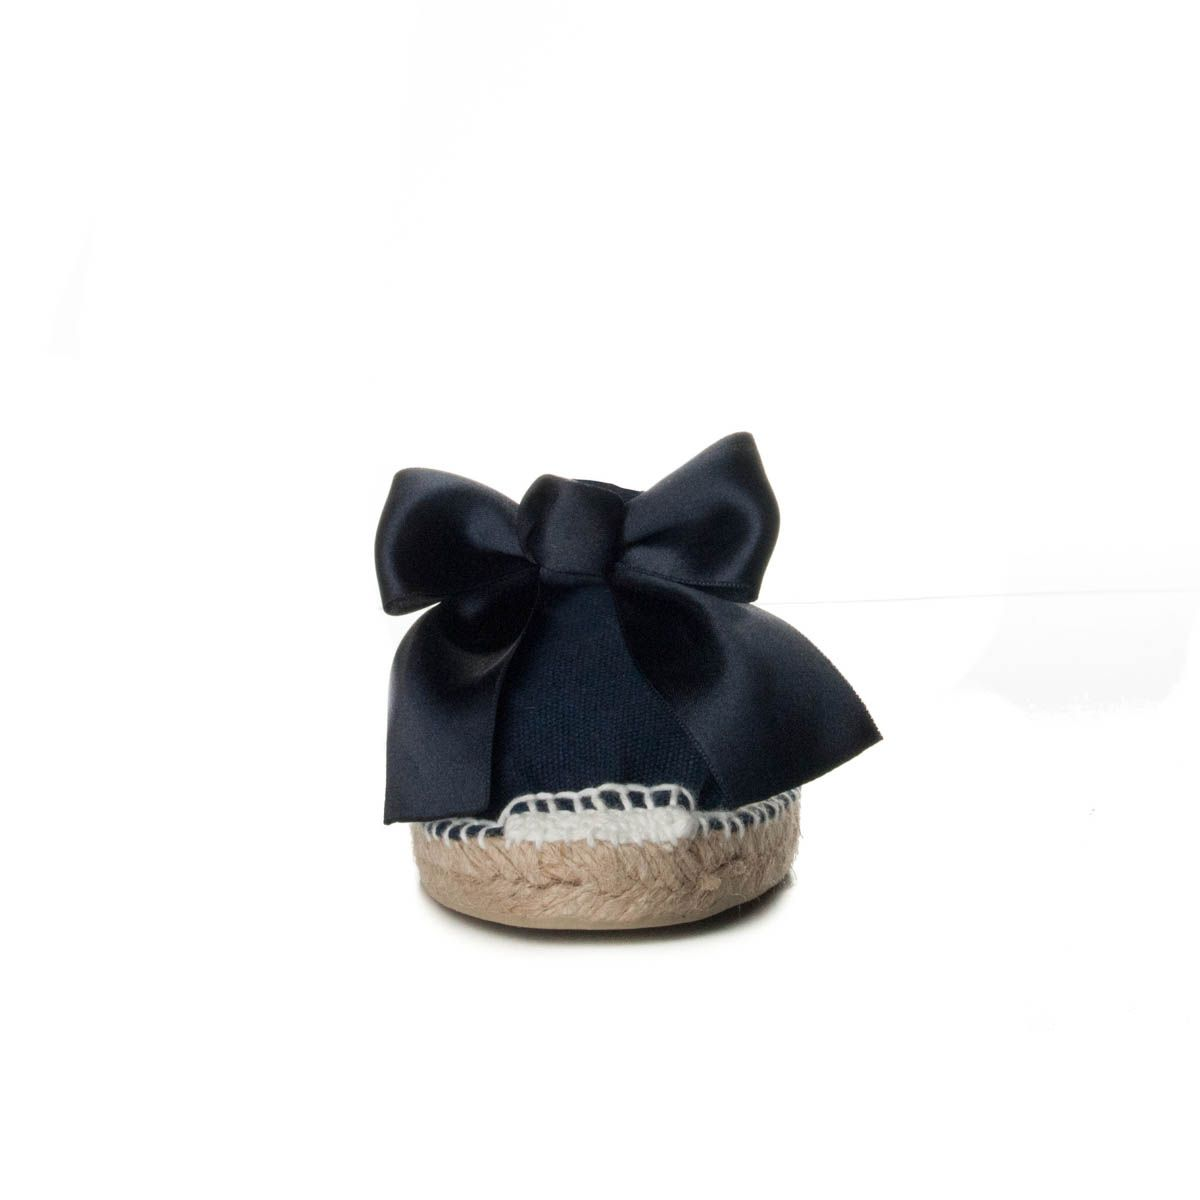 Maria Graor Bow Front Espadrille in Blue